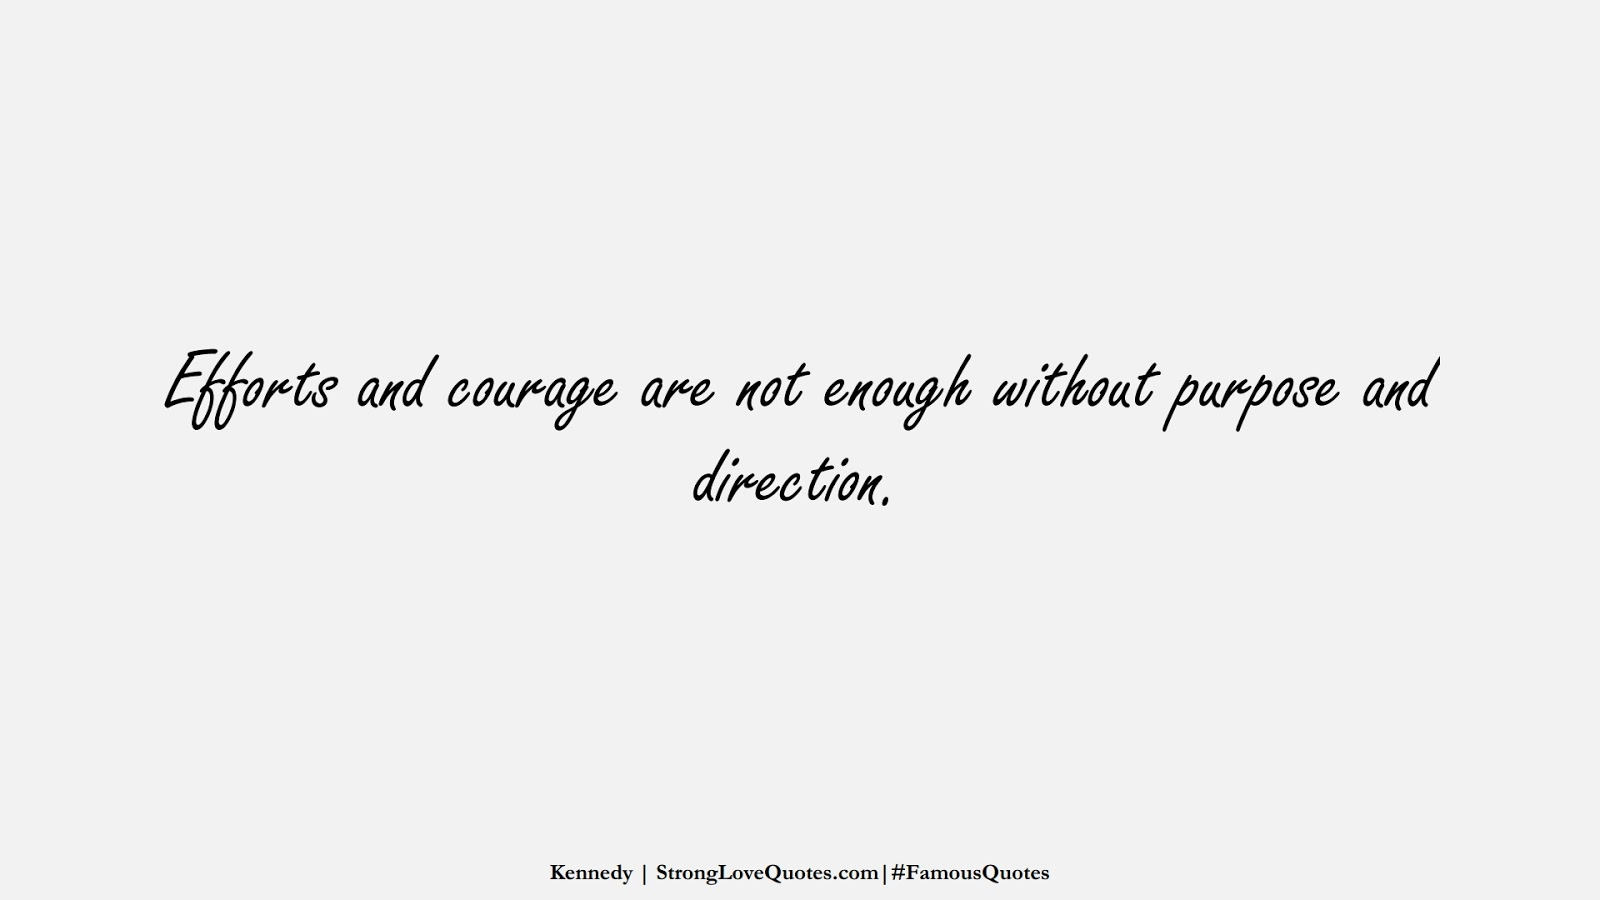 Efforts and courage are not enough without purpose and direction. (Kennedy);  #FamousQuotes